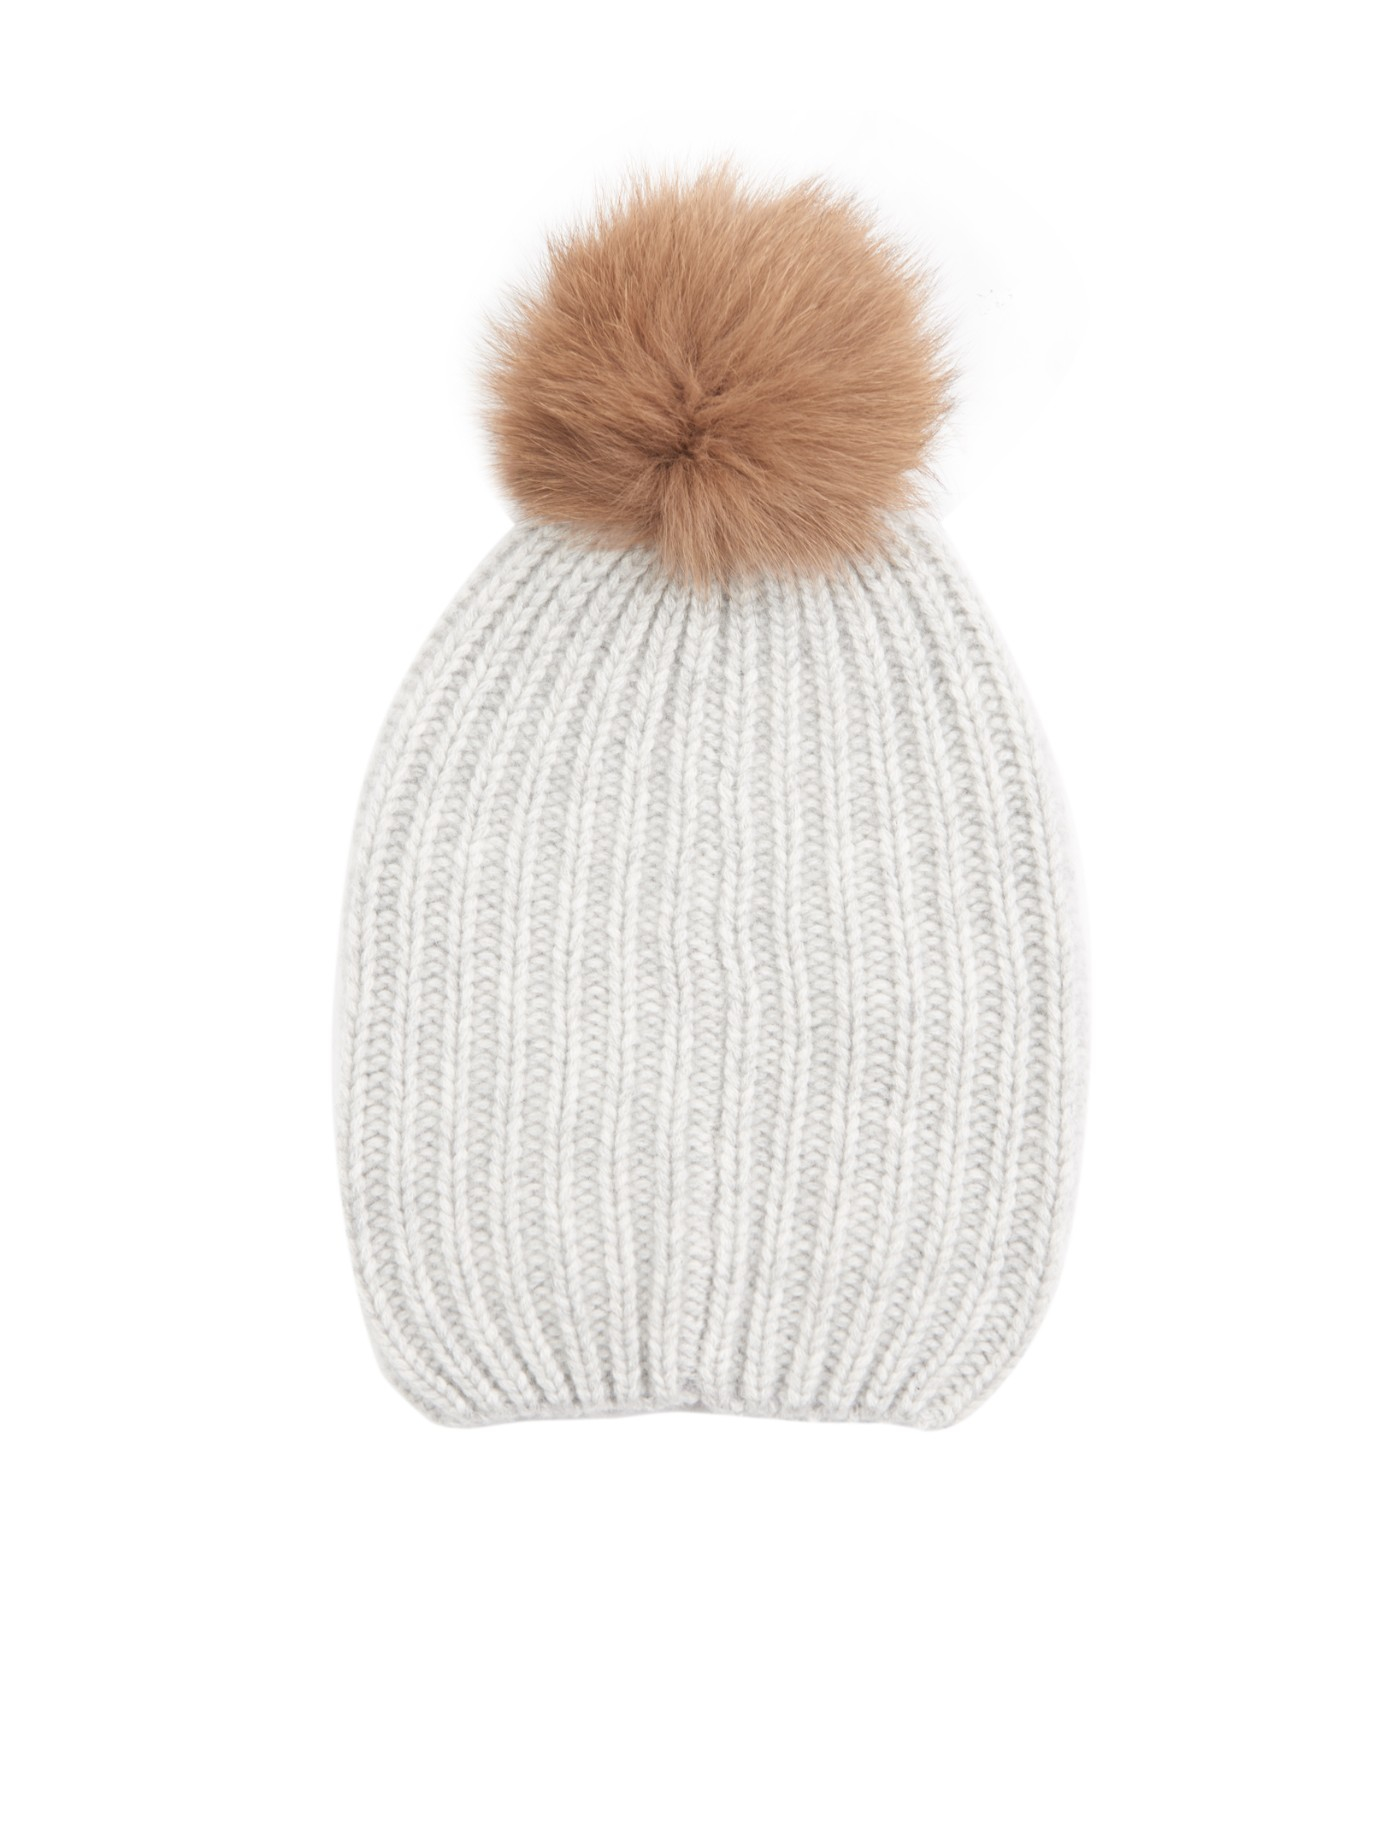 Knitting Pattern For Cashmere Beanie : Woolrich Ribbed-Knit Cashmere Beanie Hat in Gray Lyst